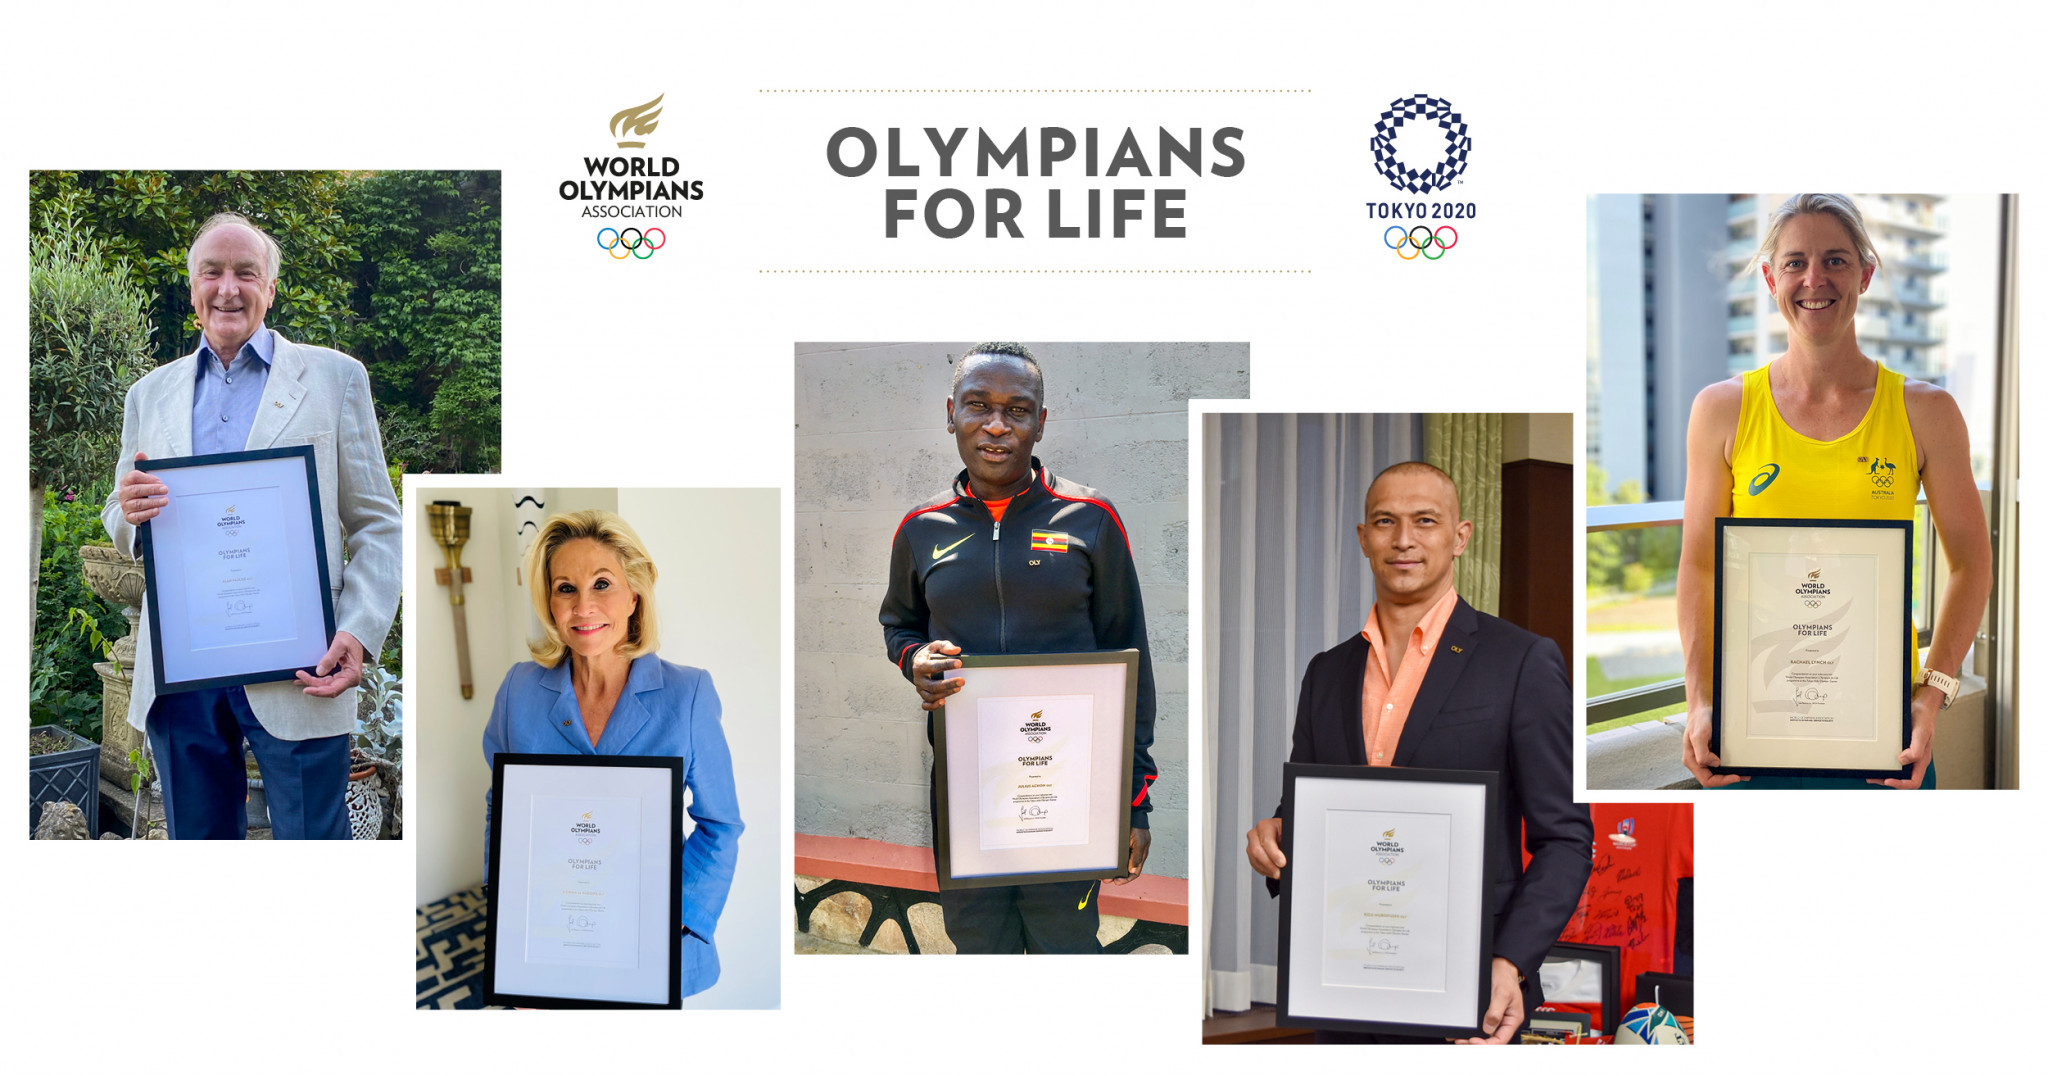 Five new Olympians for Life including Tokyo 2020 participant Lynch presented by WOA